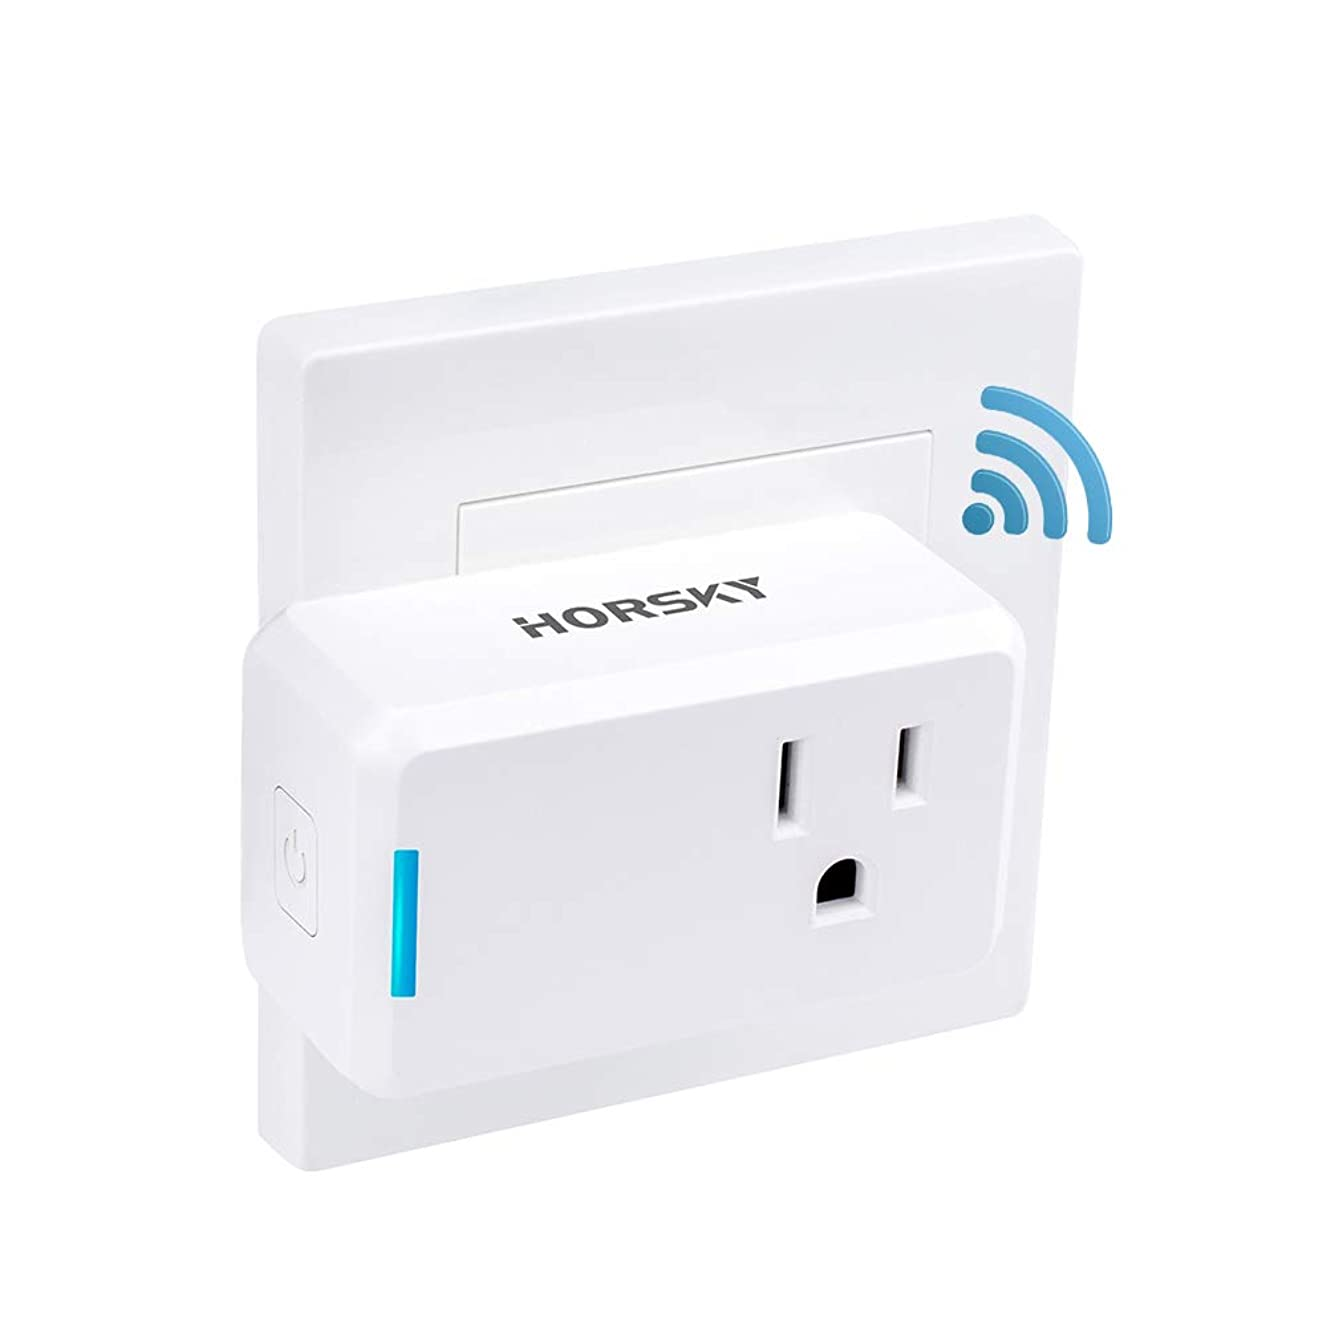 Wifi Smart Plug Alexa,Horsky Wireless Outlet Switch Socket Works with Echo and Google Assistant,No Hub Required,Timing Remote Controlling Electronics Device from Anywhere Via Free App